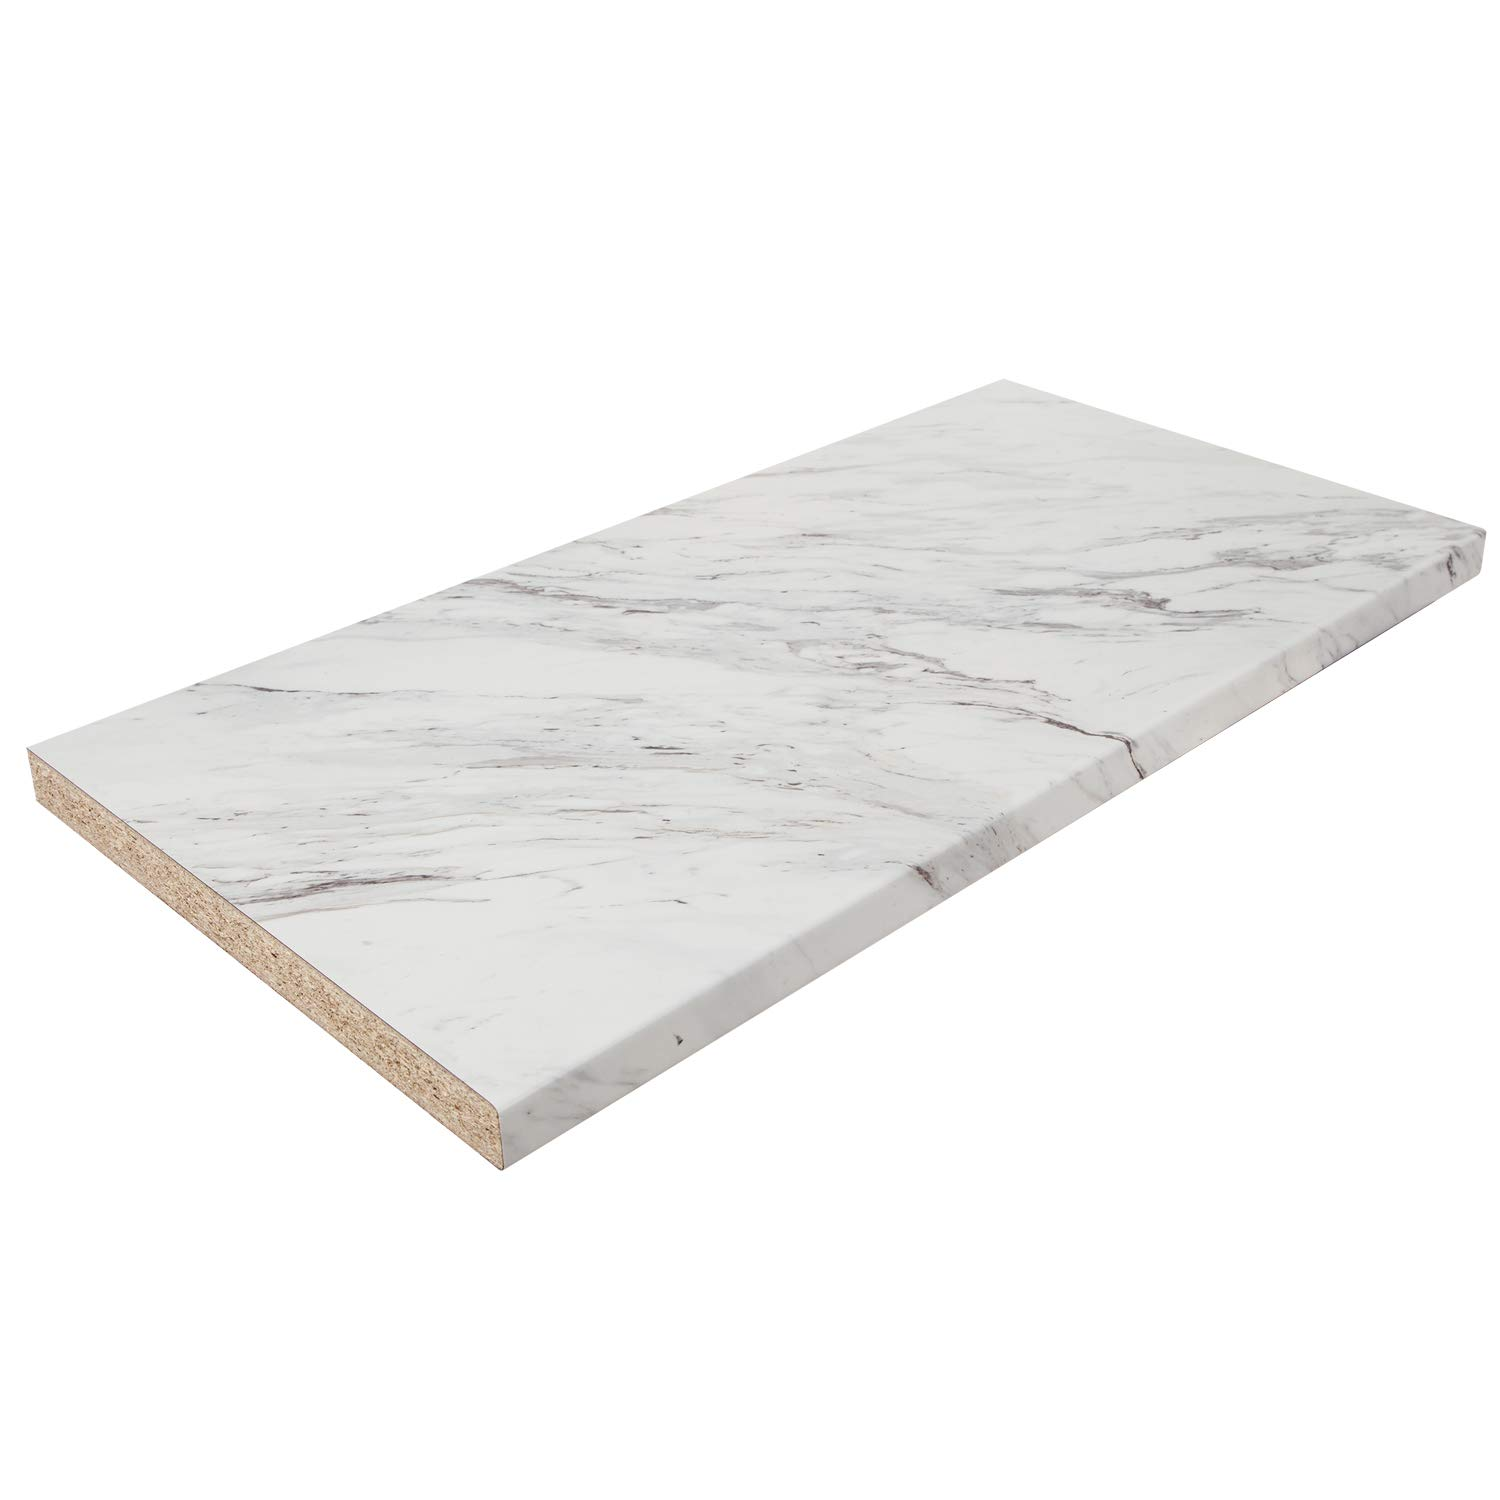 White marble effect laminate kitchen worktop